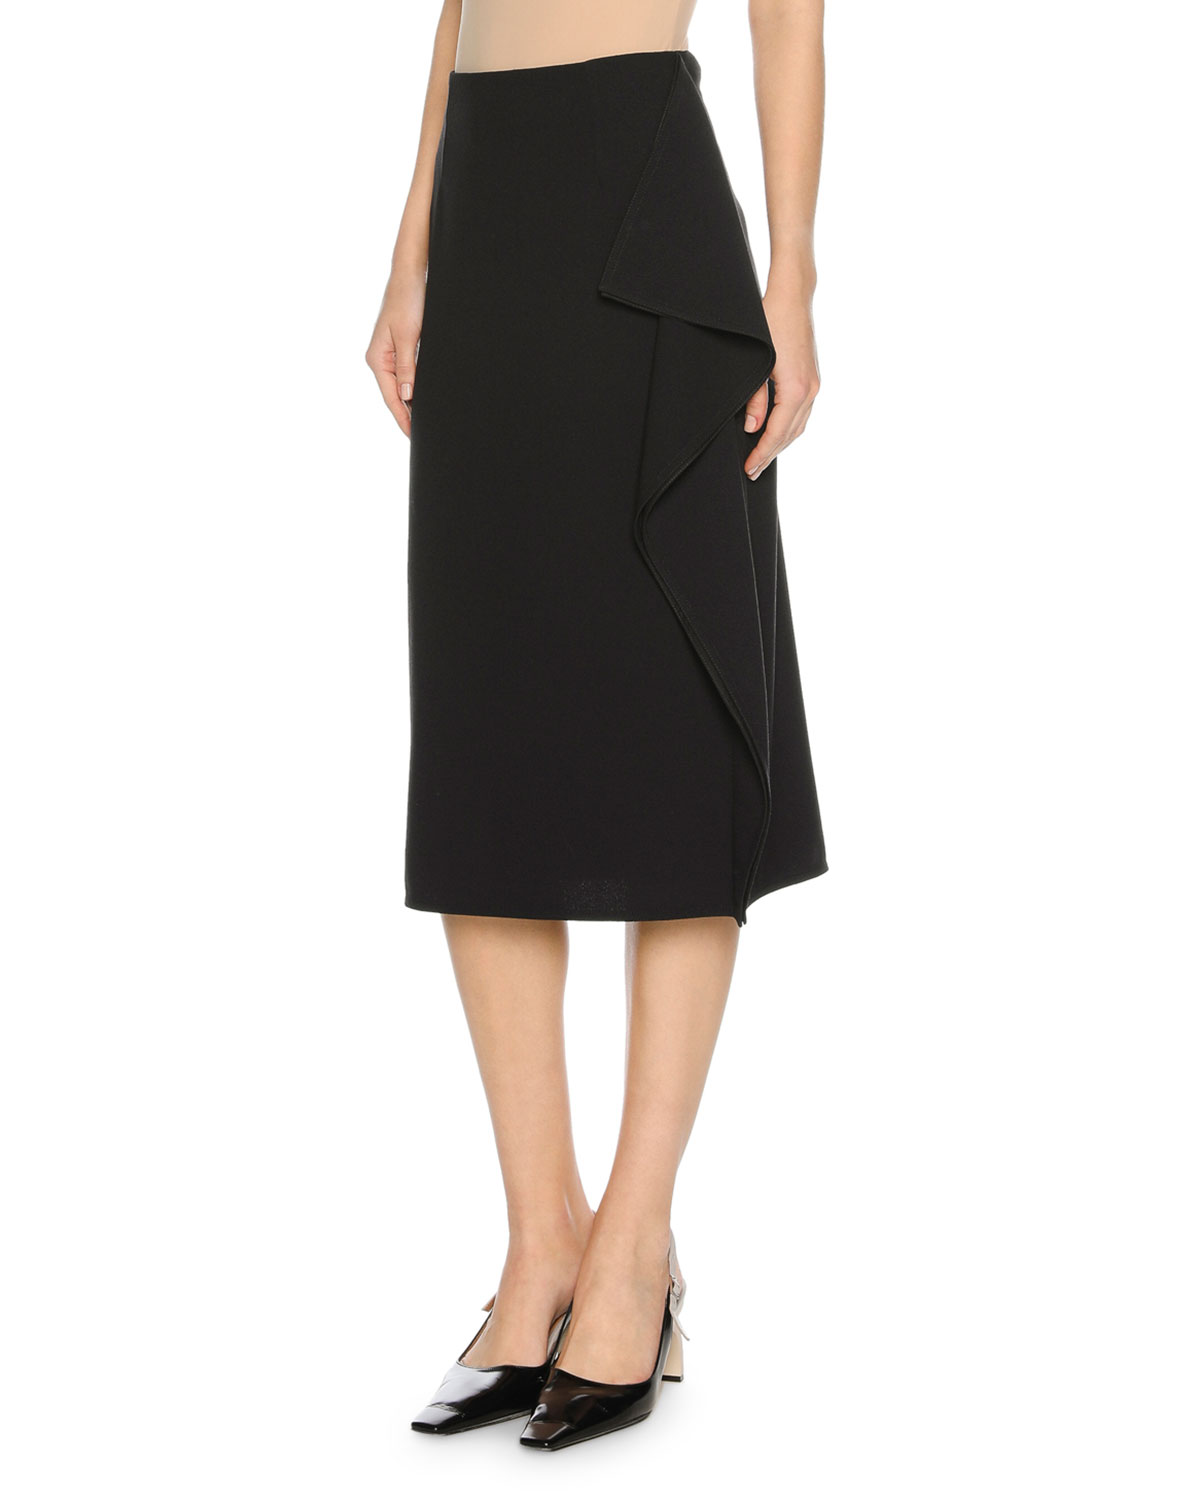 Cascade-Ruffle Midi Skirt, Blue/Black